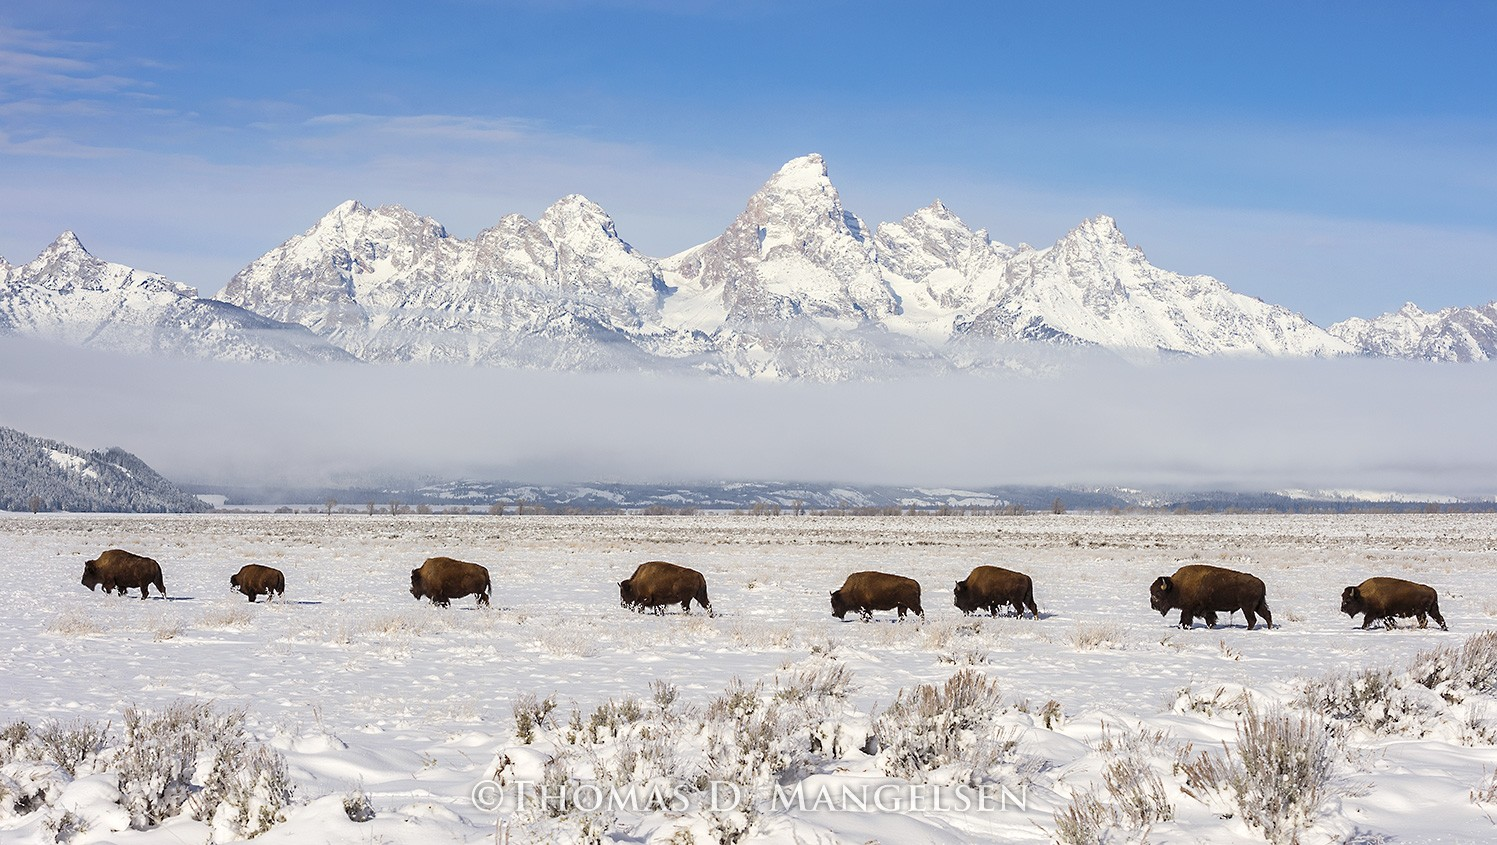 The Long March Bison Mammals